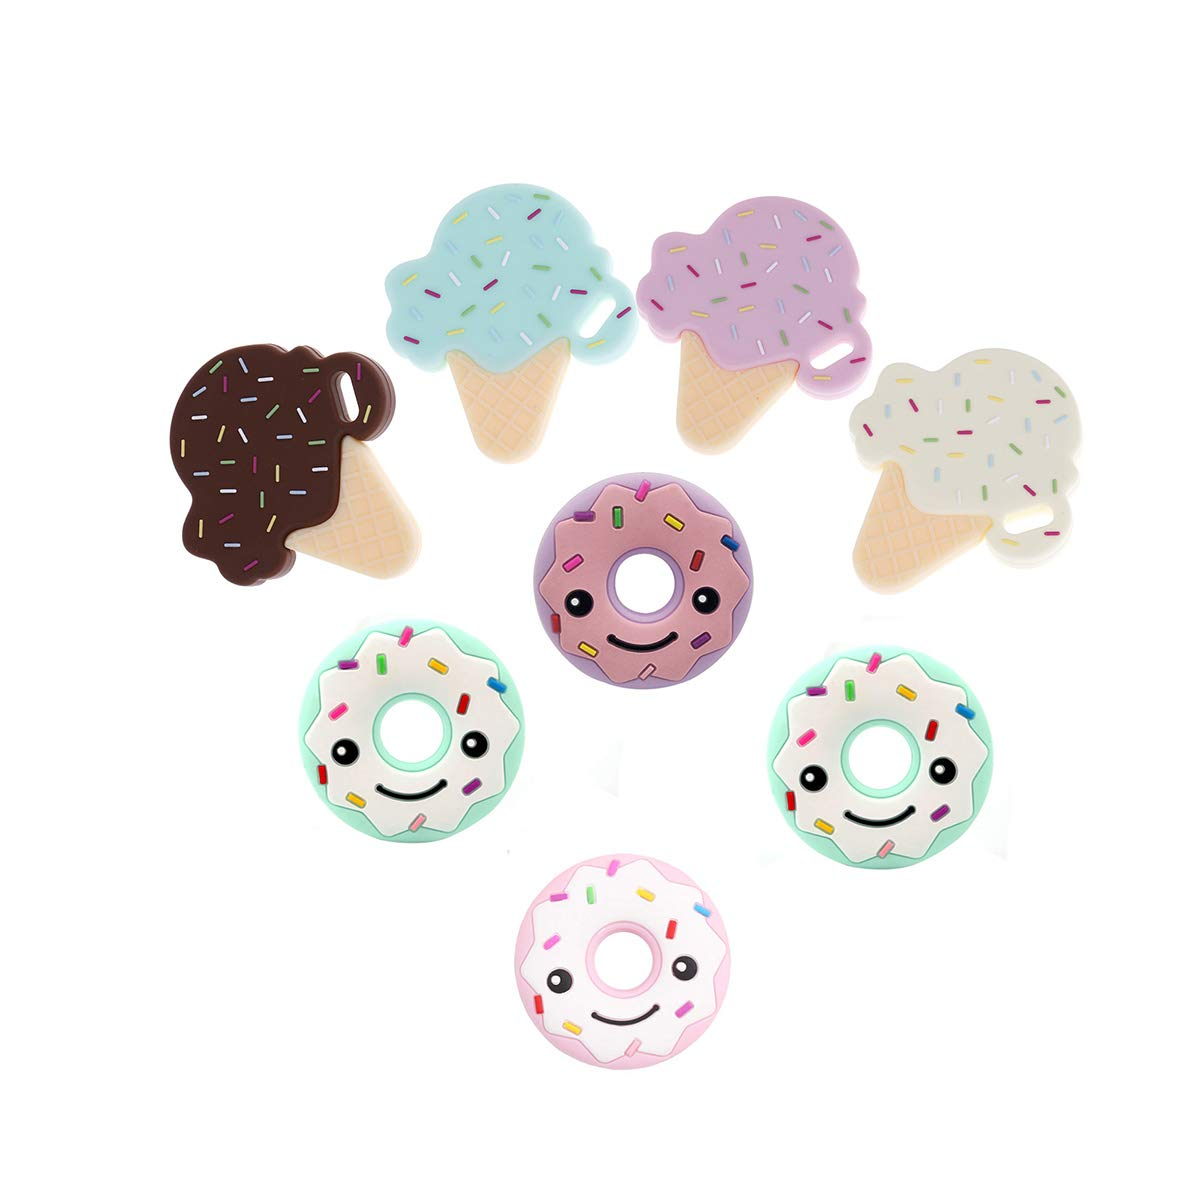 Baby Silicone Teether Pendant Teething Accessory Doughnut ice-cream Toys 8pc Colorful Chewing Beads by Biter teether